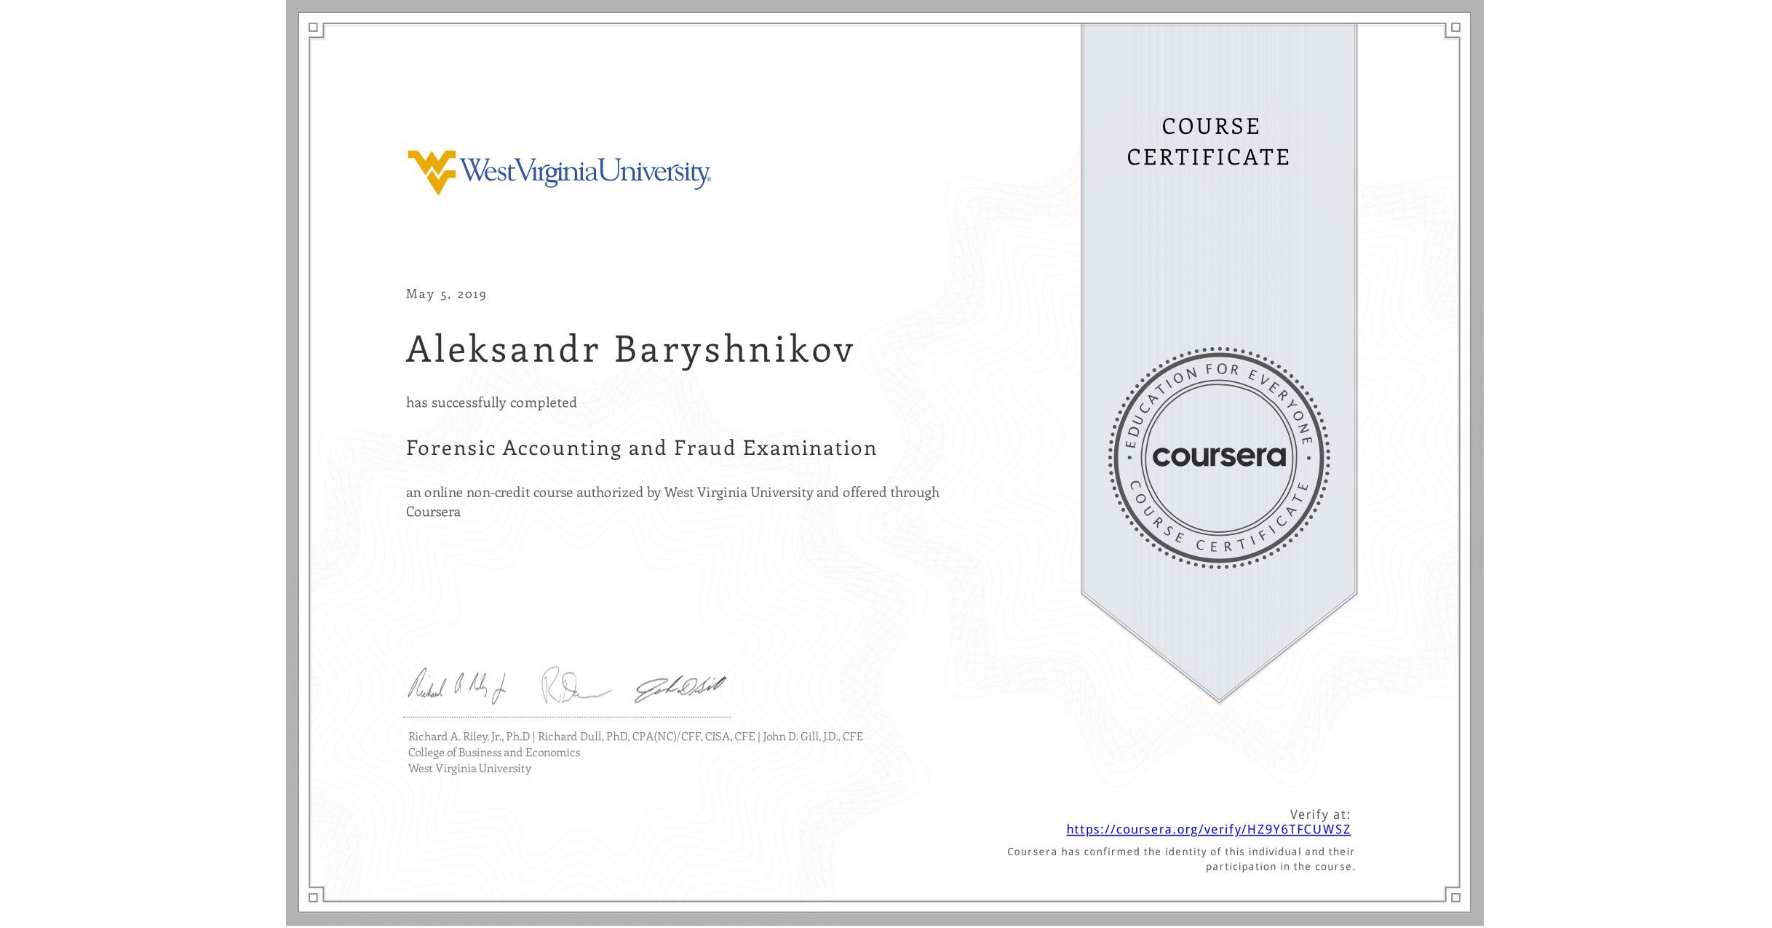 View certificate for Aleksandr Baryshnikov, Forensic Accounting and Fraud Examination, an online non-credit course authorized by West Virginia University and offered through Coursera